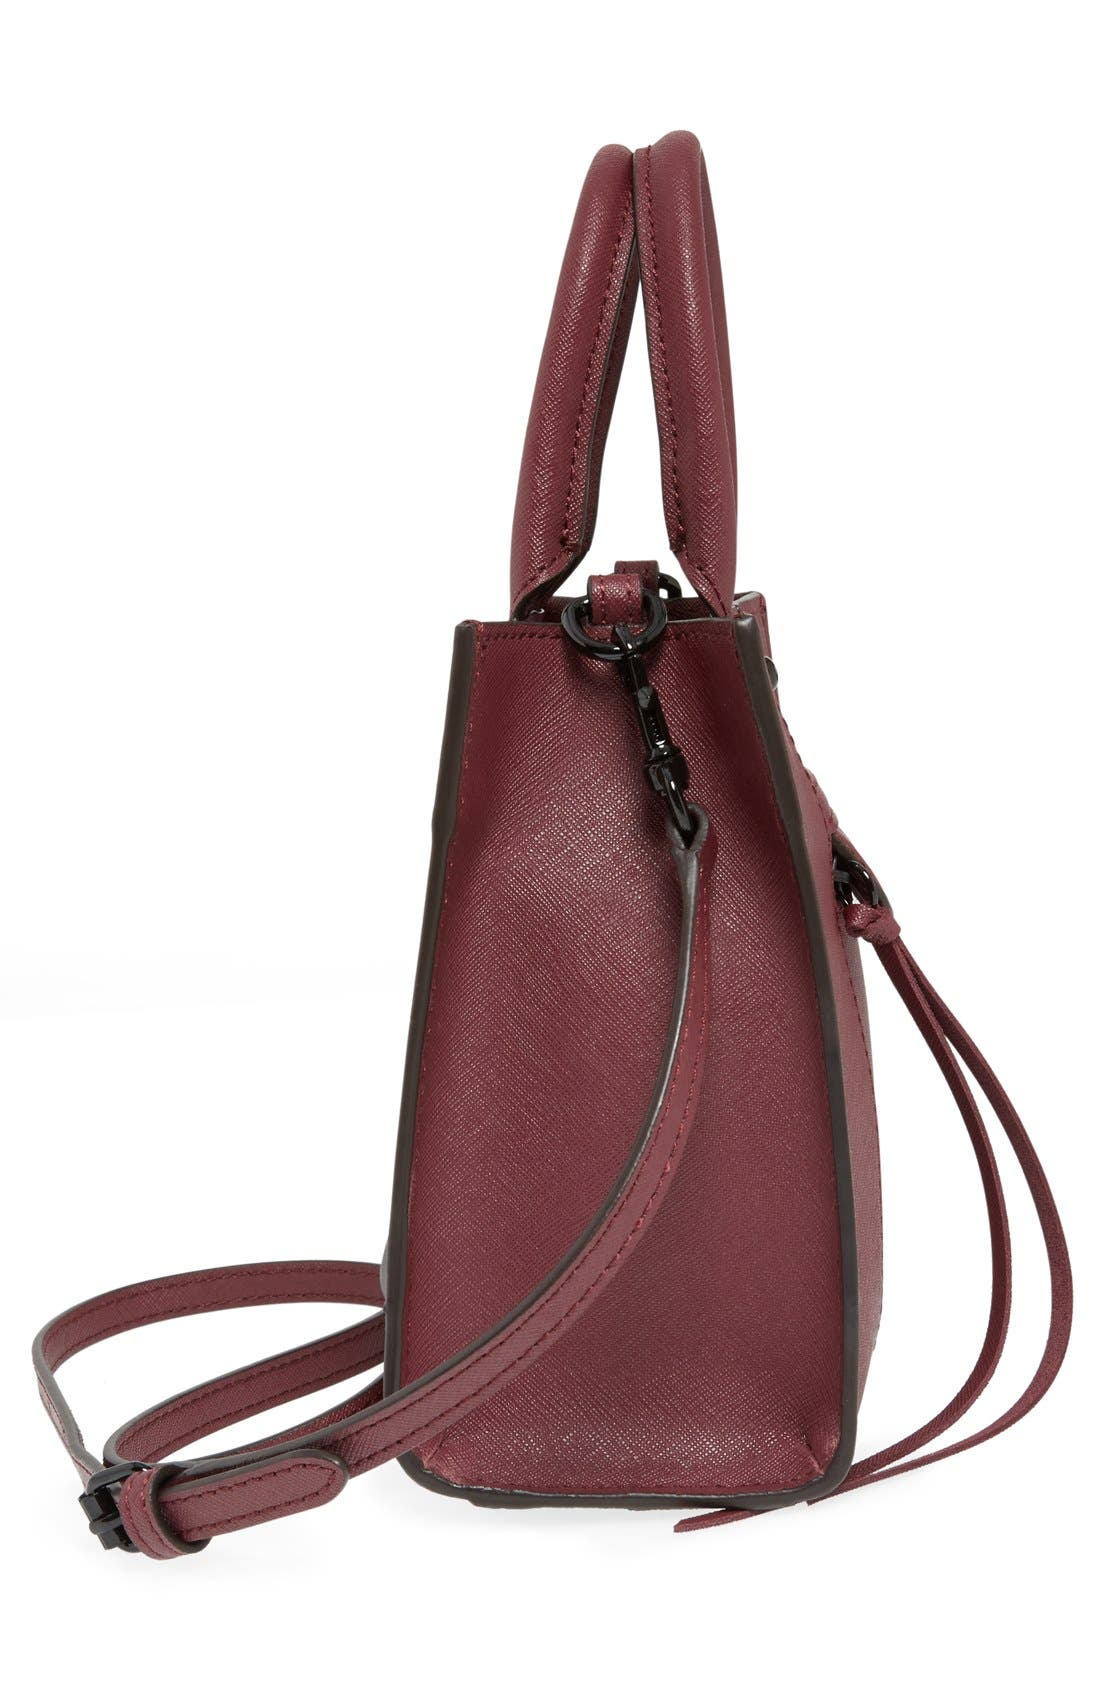 'Mini MAB Tote' Crossbody Bag,                             Alternate thumbnail 137, color,